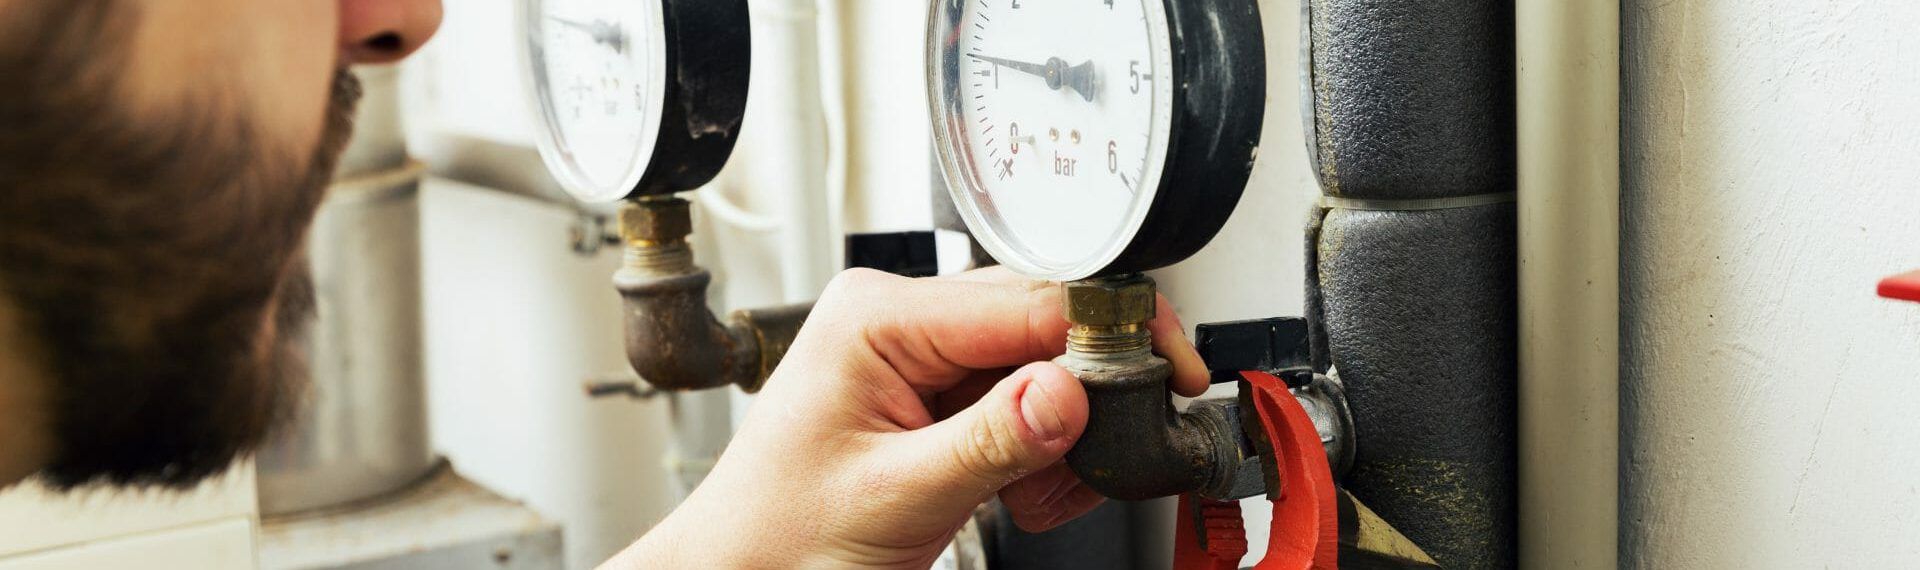 What considerations do you need to make when choosing Plumbing & Heating Contractor's Insurance?